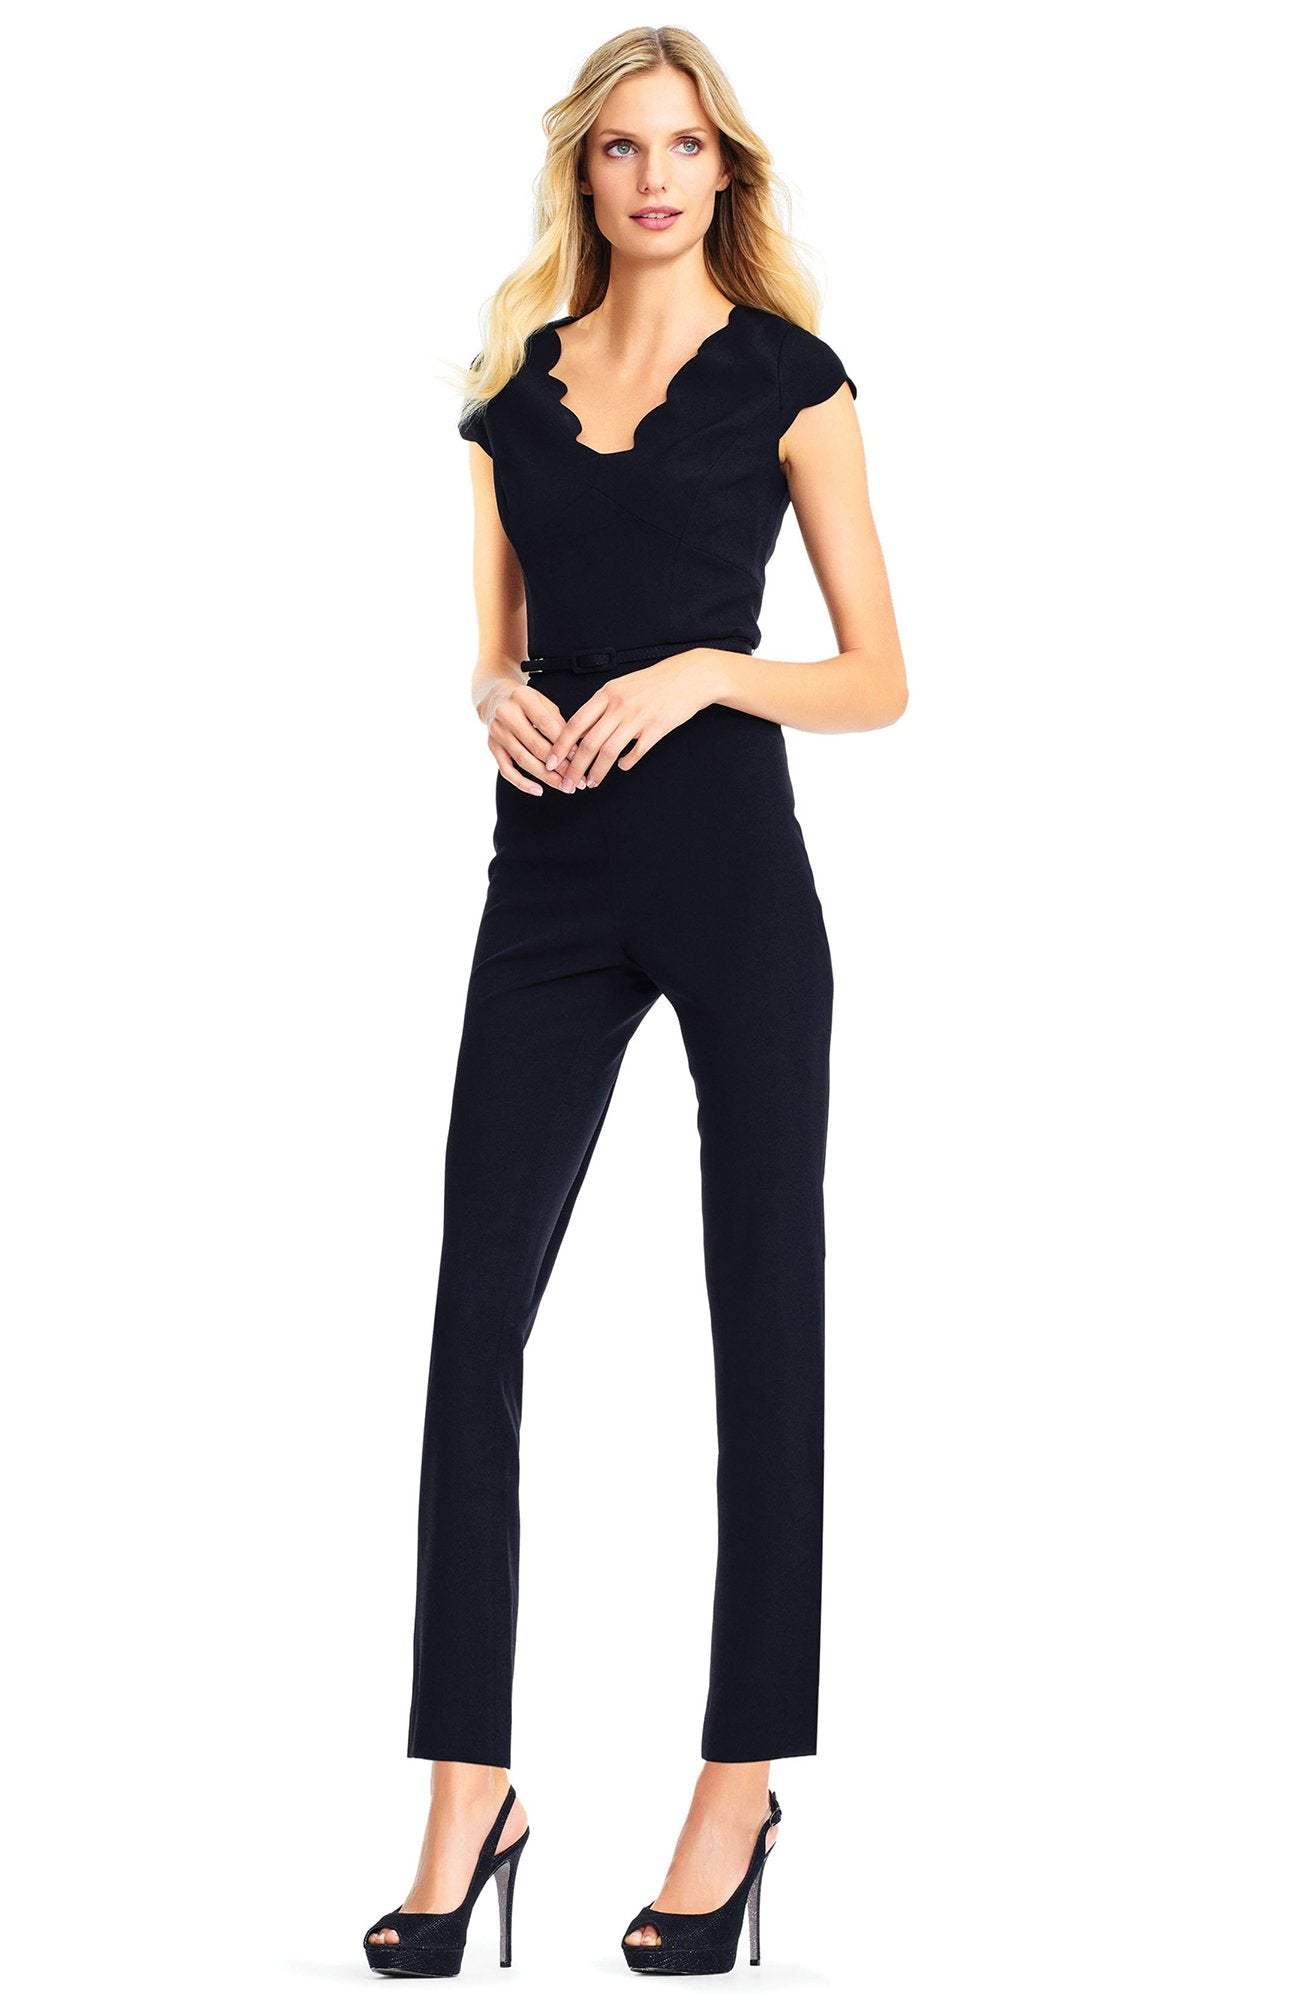 Adrianna Papell - AP1D101745 Fitted V-Neck Cap Sleeves Jumpsuit In Black